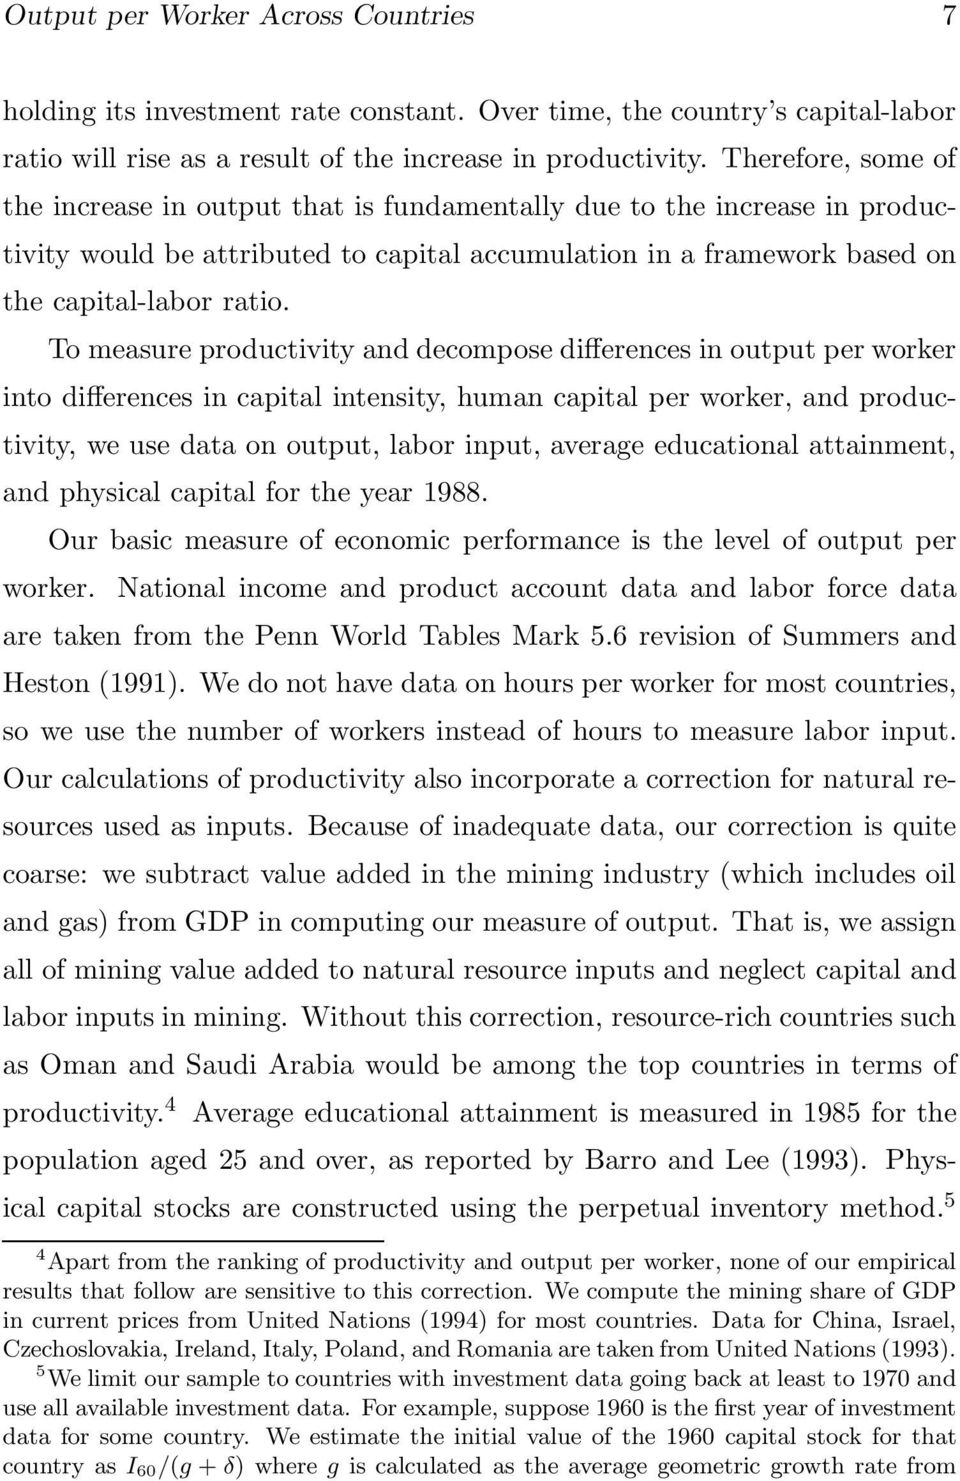 To measure productivity and decompose differences in output per worker into differences in capital intensity, human capital per worker, and productivity, we use data on output, labor input, average